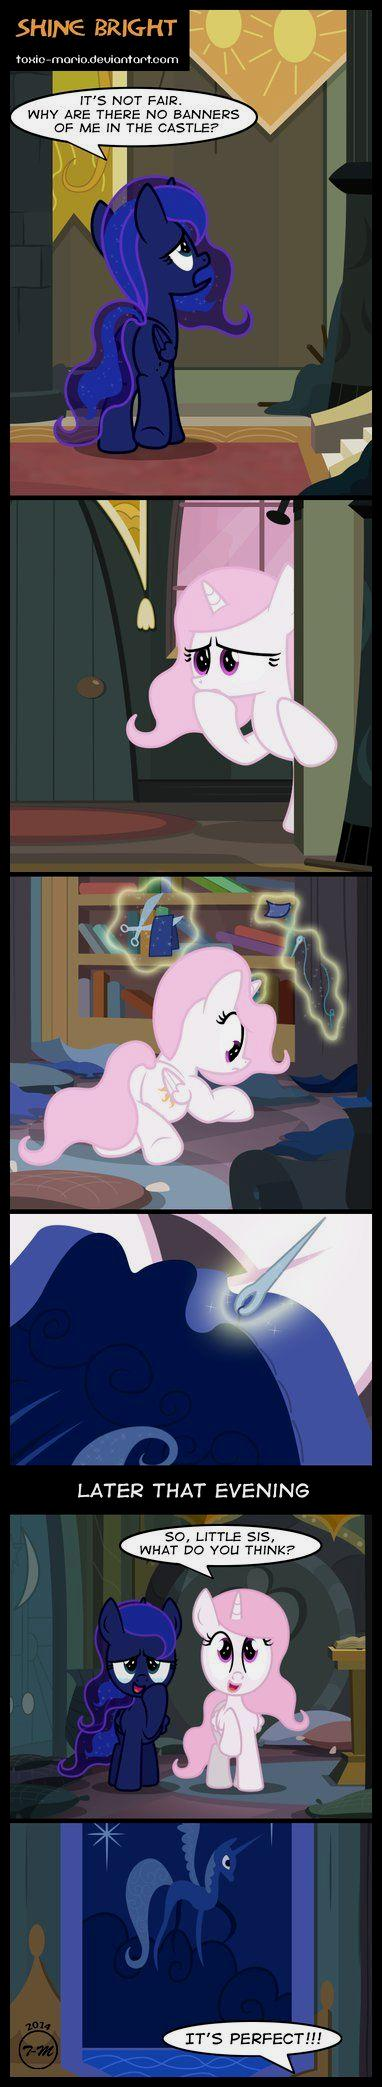 Shine bright by toxic mario on deviantart my little pony - Sparkle and shine cartoon ...